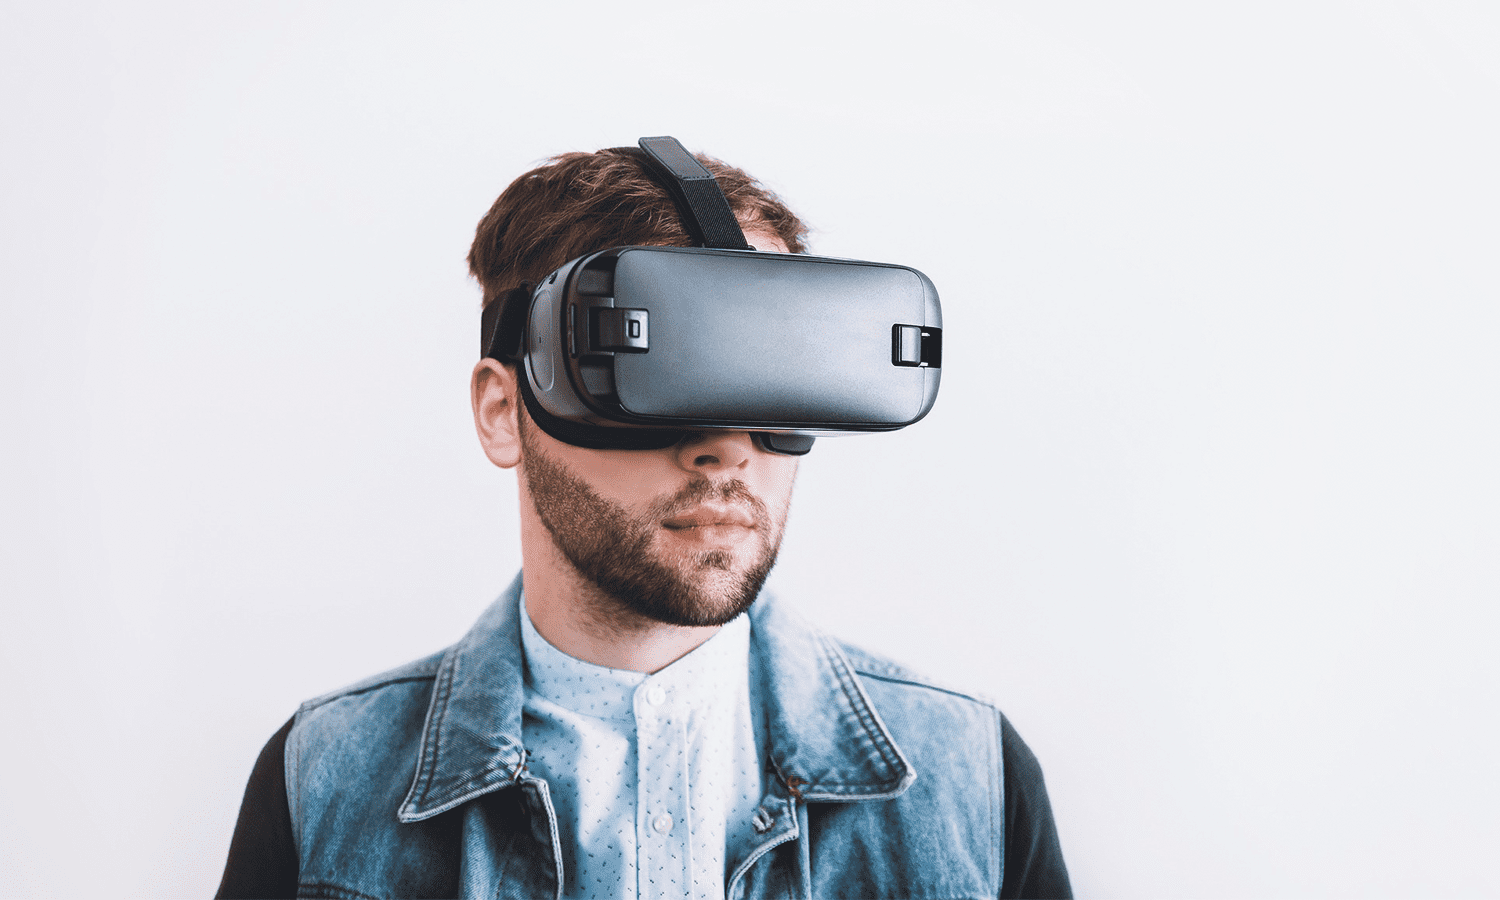 AR/VR and 360º video. B2B tools with an immense potential